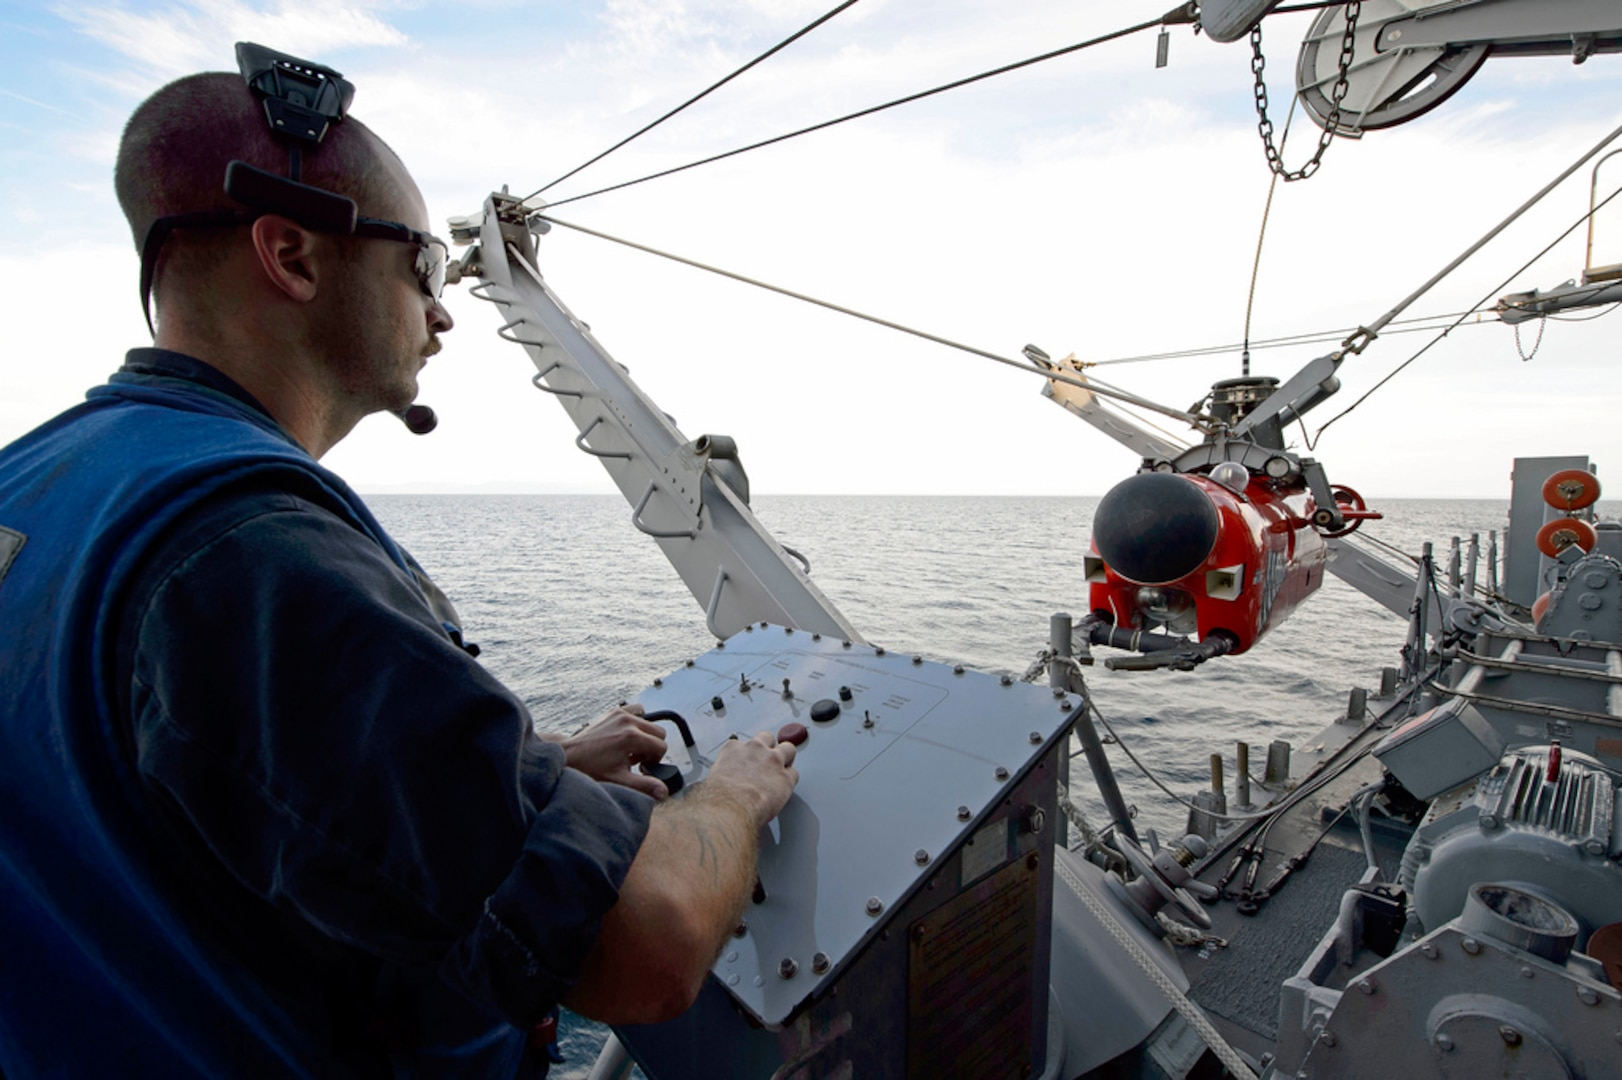 Mineman 1st Class Zachary Abel deploys a AN/SLQ-48 Mine Neutralization Vehicle (MNV) from the mine countermeasures ship USS Pioneer (MCM 9) during 2JA 2017 Mine Countermeasures Exercise (2JA-17 MCMEX). 2JA Mine Countermeasures Exercise is an annual bilateral exercise held between the U.S. Navy and JMSDF to strengthen interoperability and increase proficiencies in mine countermeasure operations, July 26, 2017.